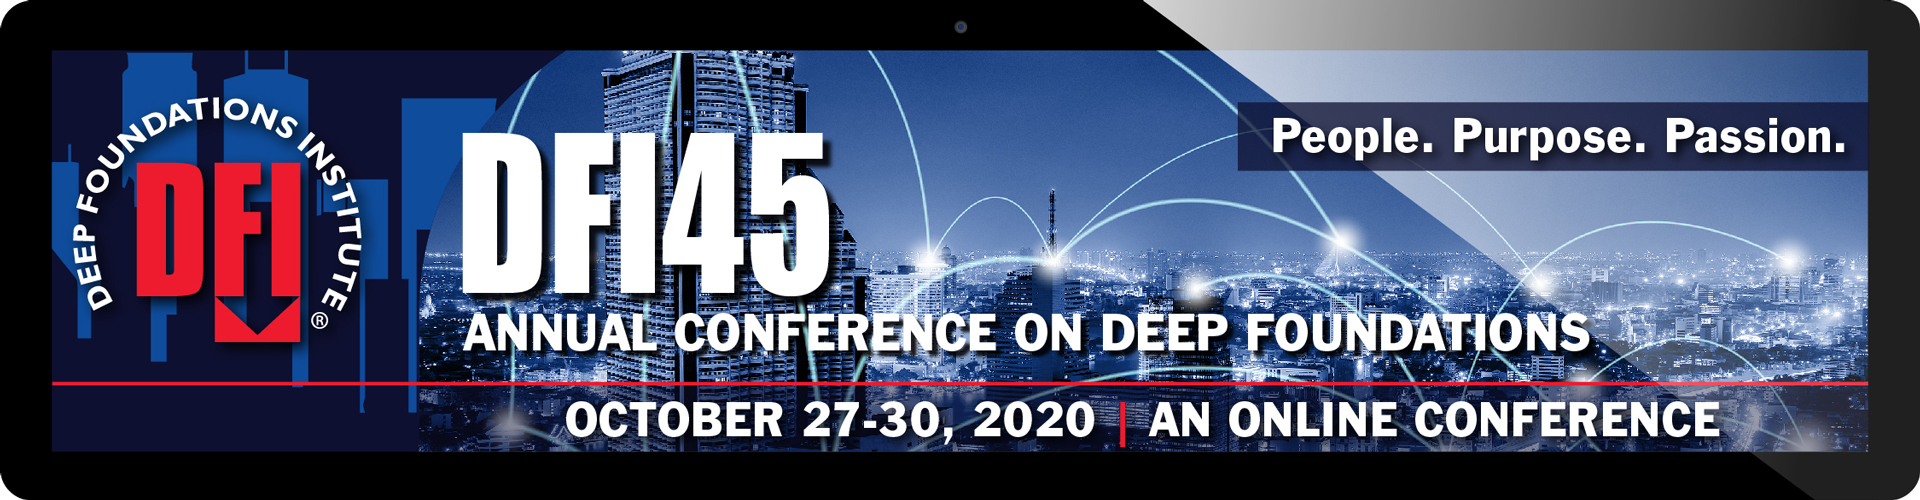 DFI 47th Annual Conference 2022